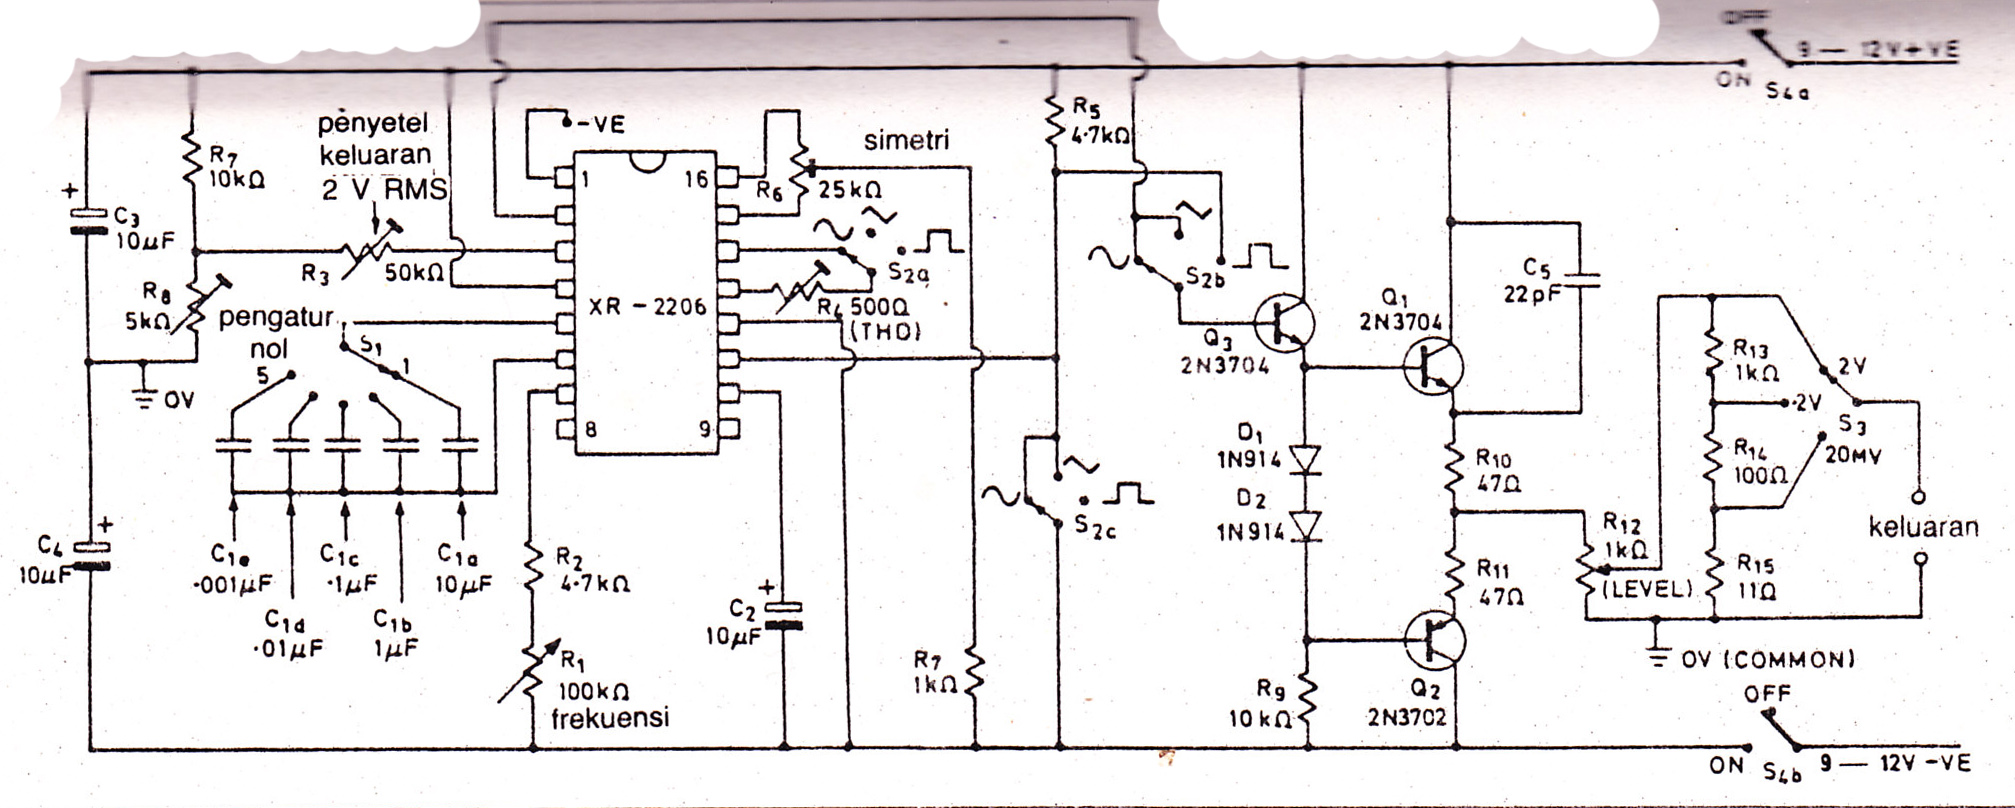 Pcb Xr2206 Function Generator Electronic Circuit Diagram And Layout With